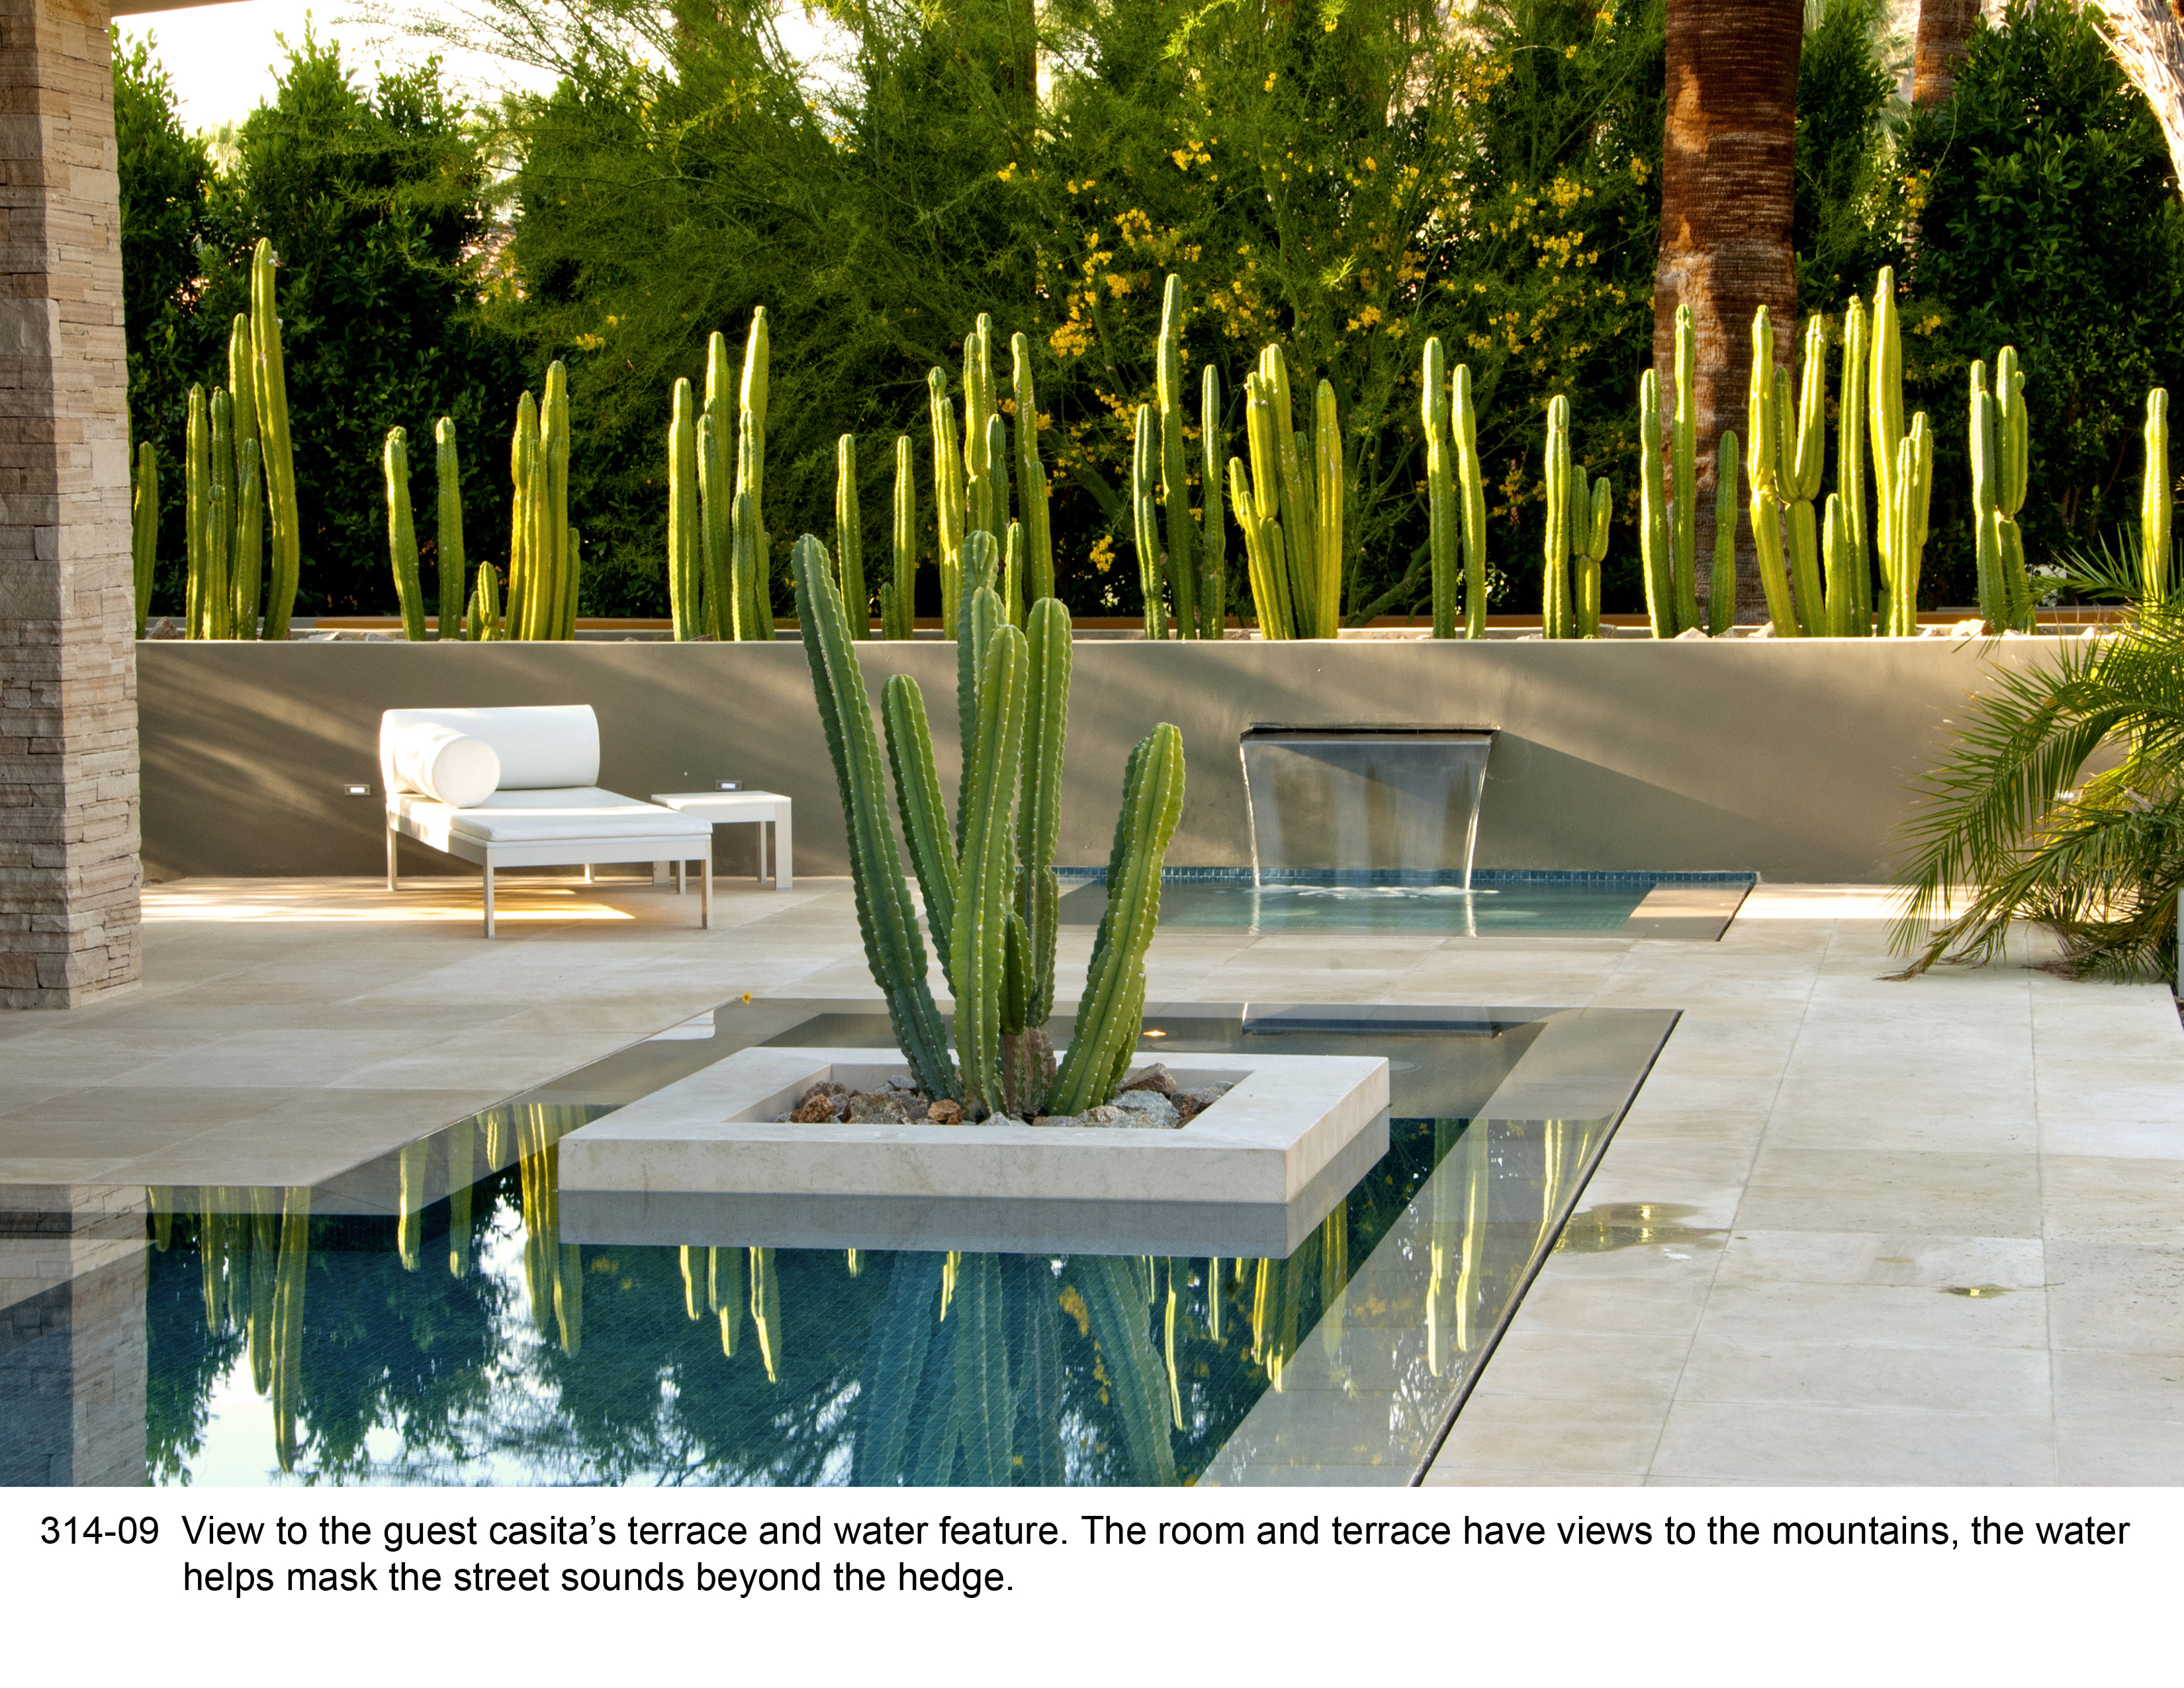 Asla 2012 professional awards new century garden a for House outside garden design